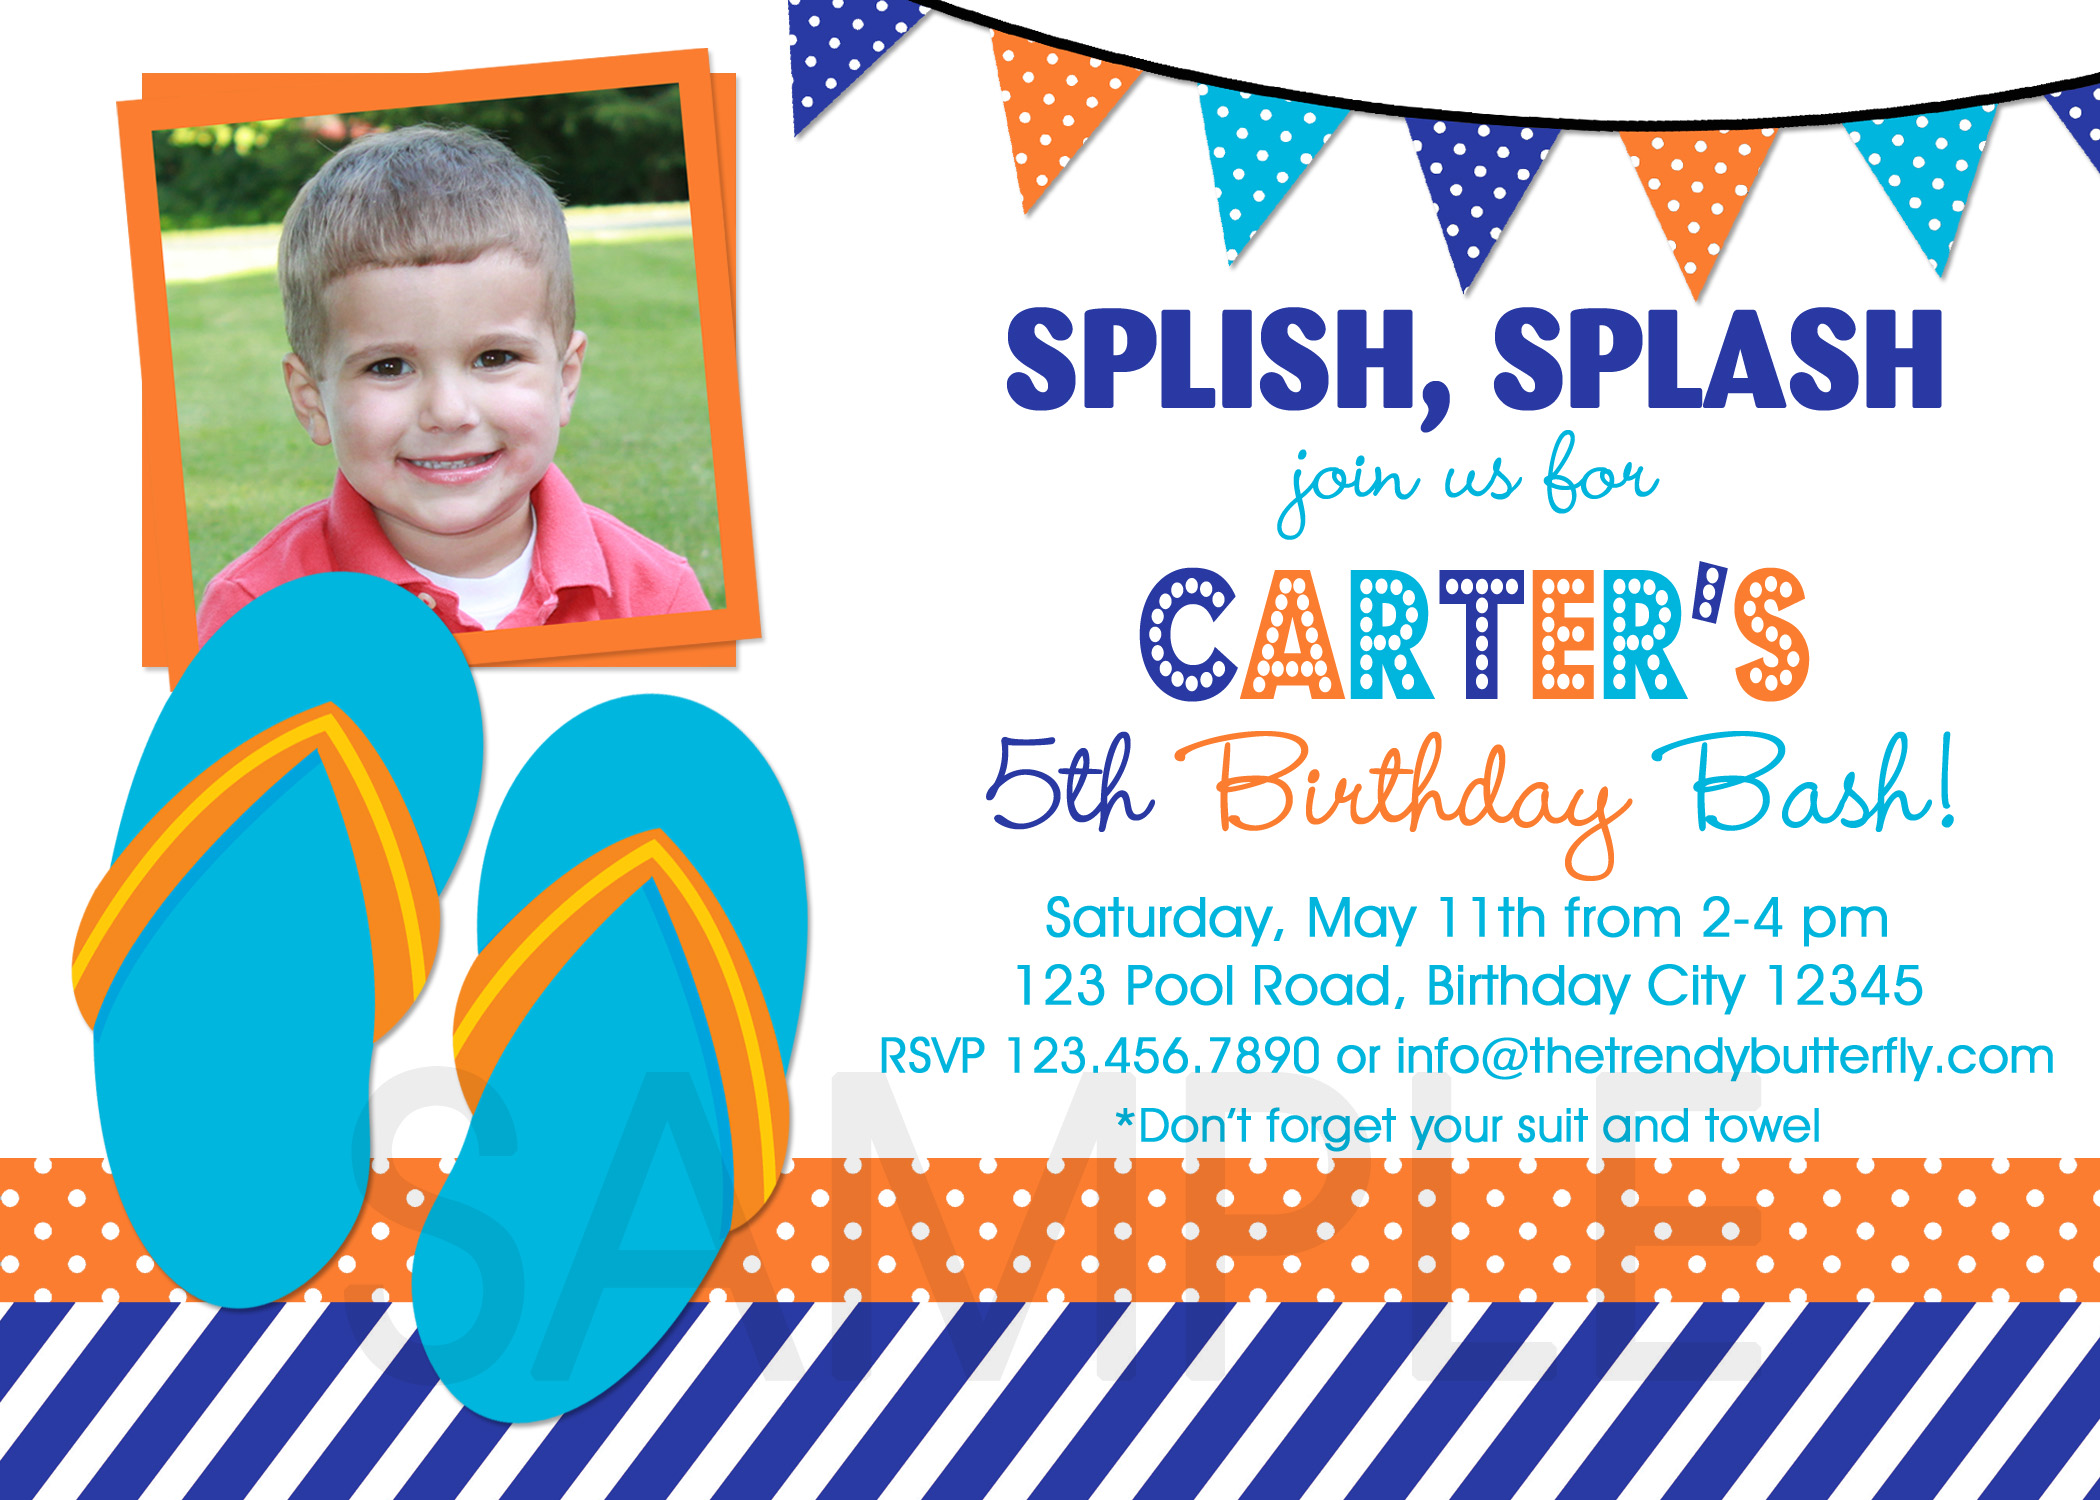 Child birthday invitations northurthwall child birthday invitations stopboris Choice Image